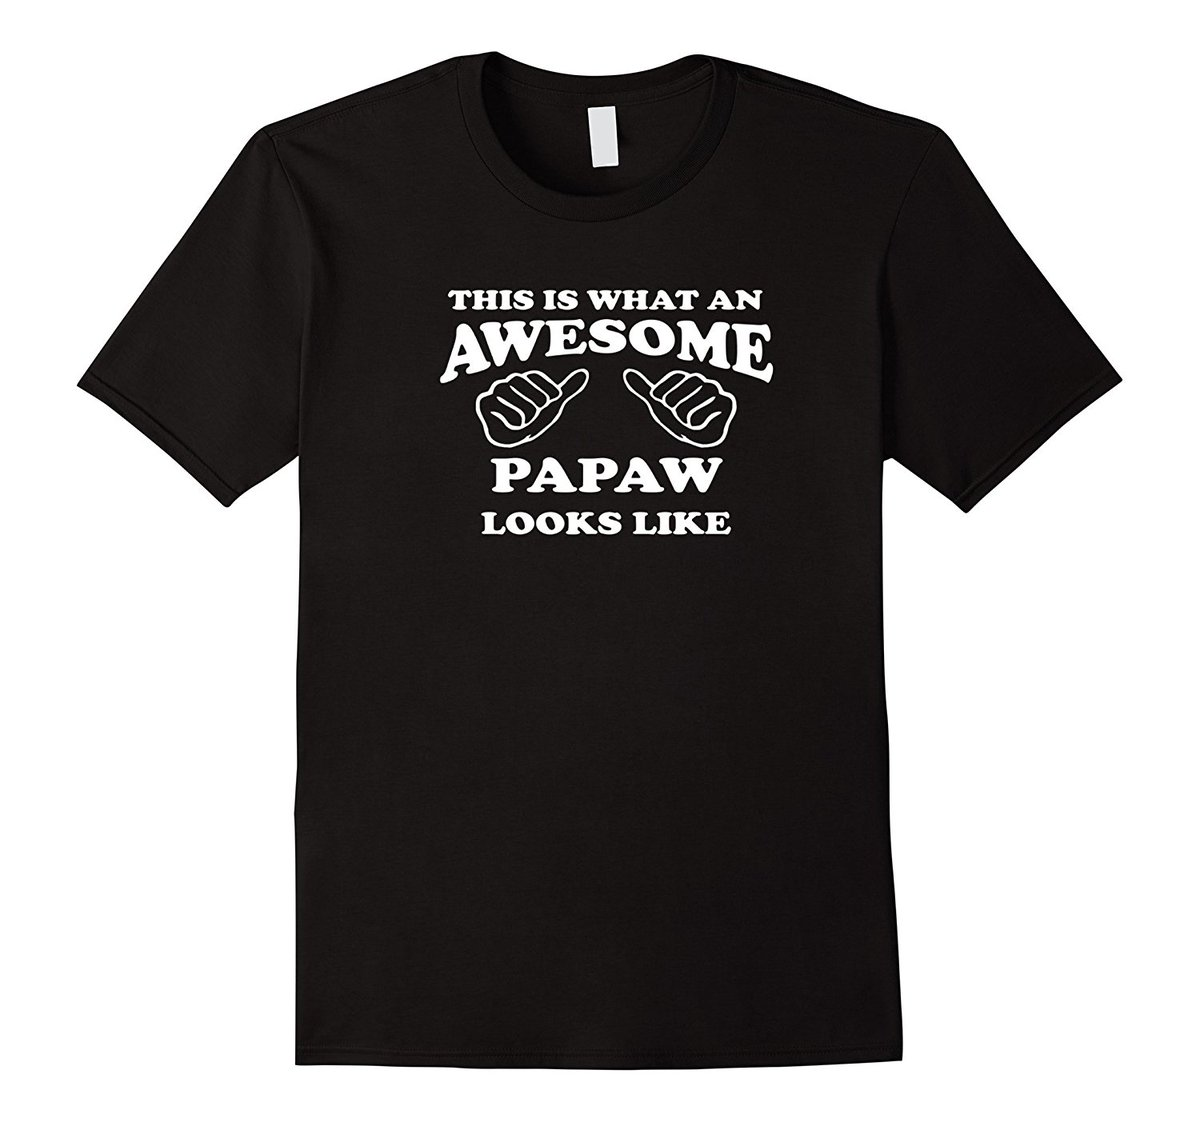 Awesome #Papaw Gift Shirt - #GrandparentsDay - https://t.co/ceruxrodcQ # https://t.co/SlL2RTfy2K